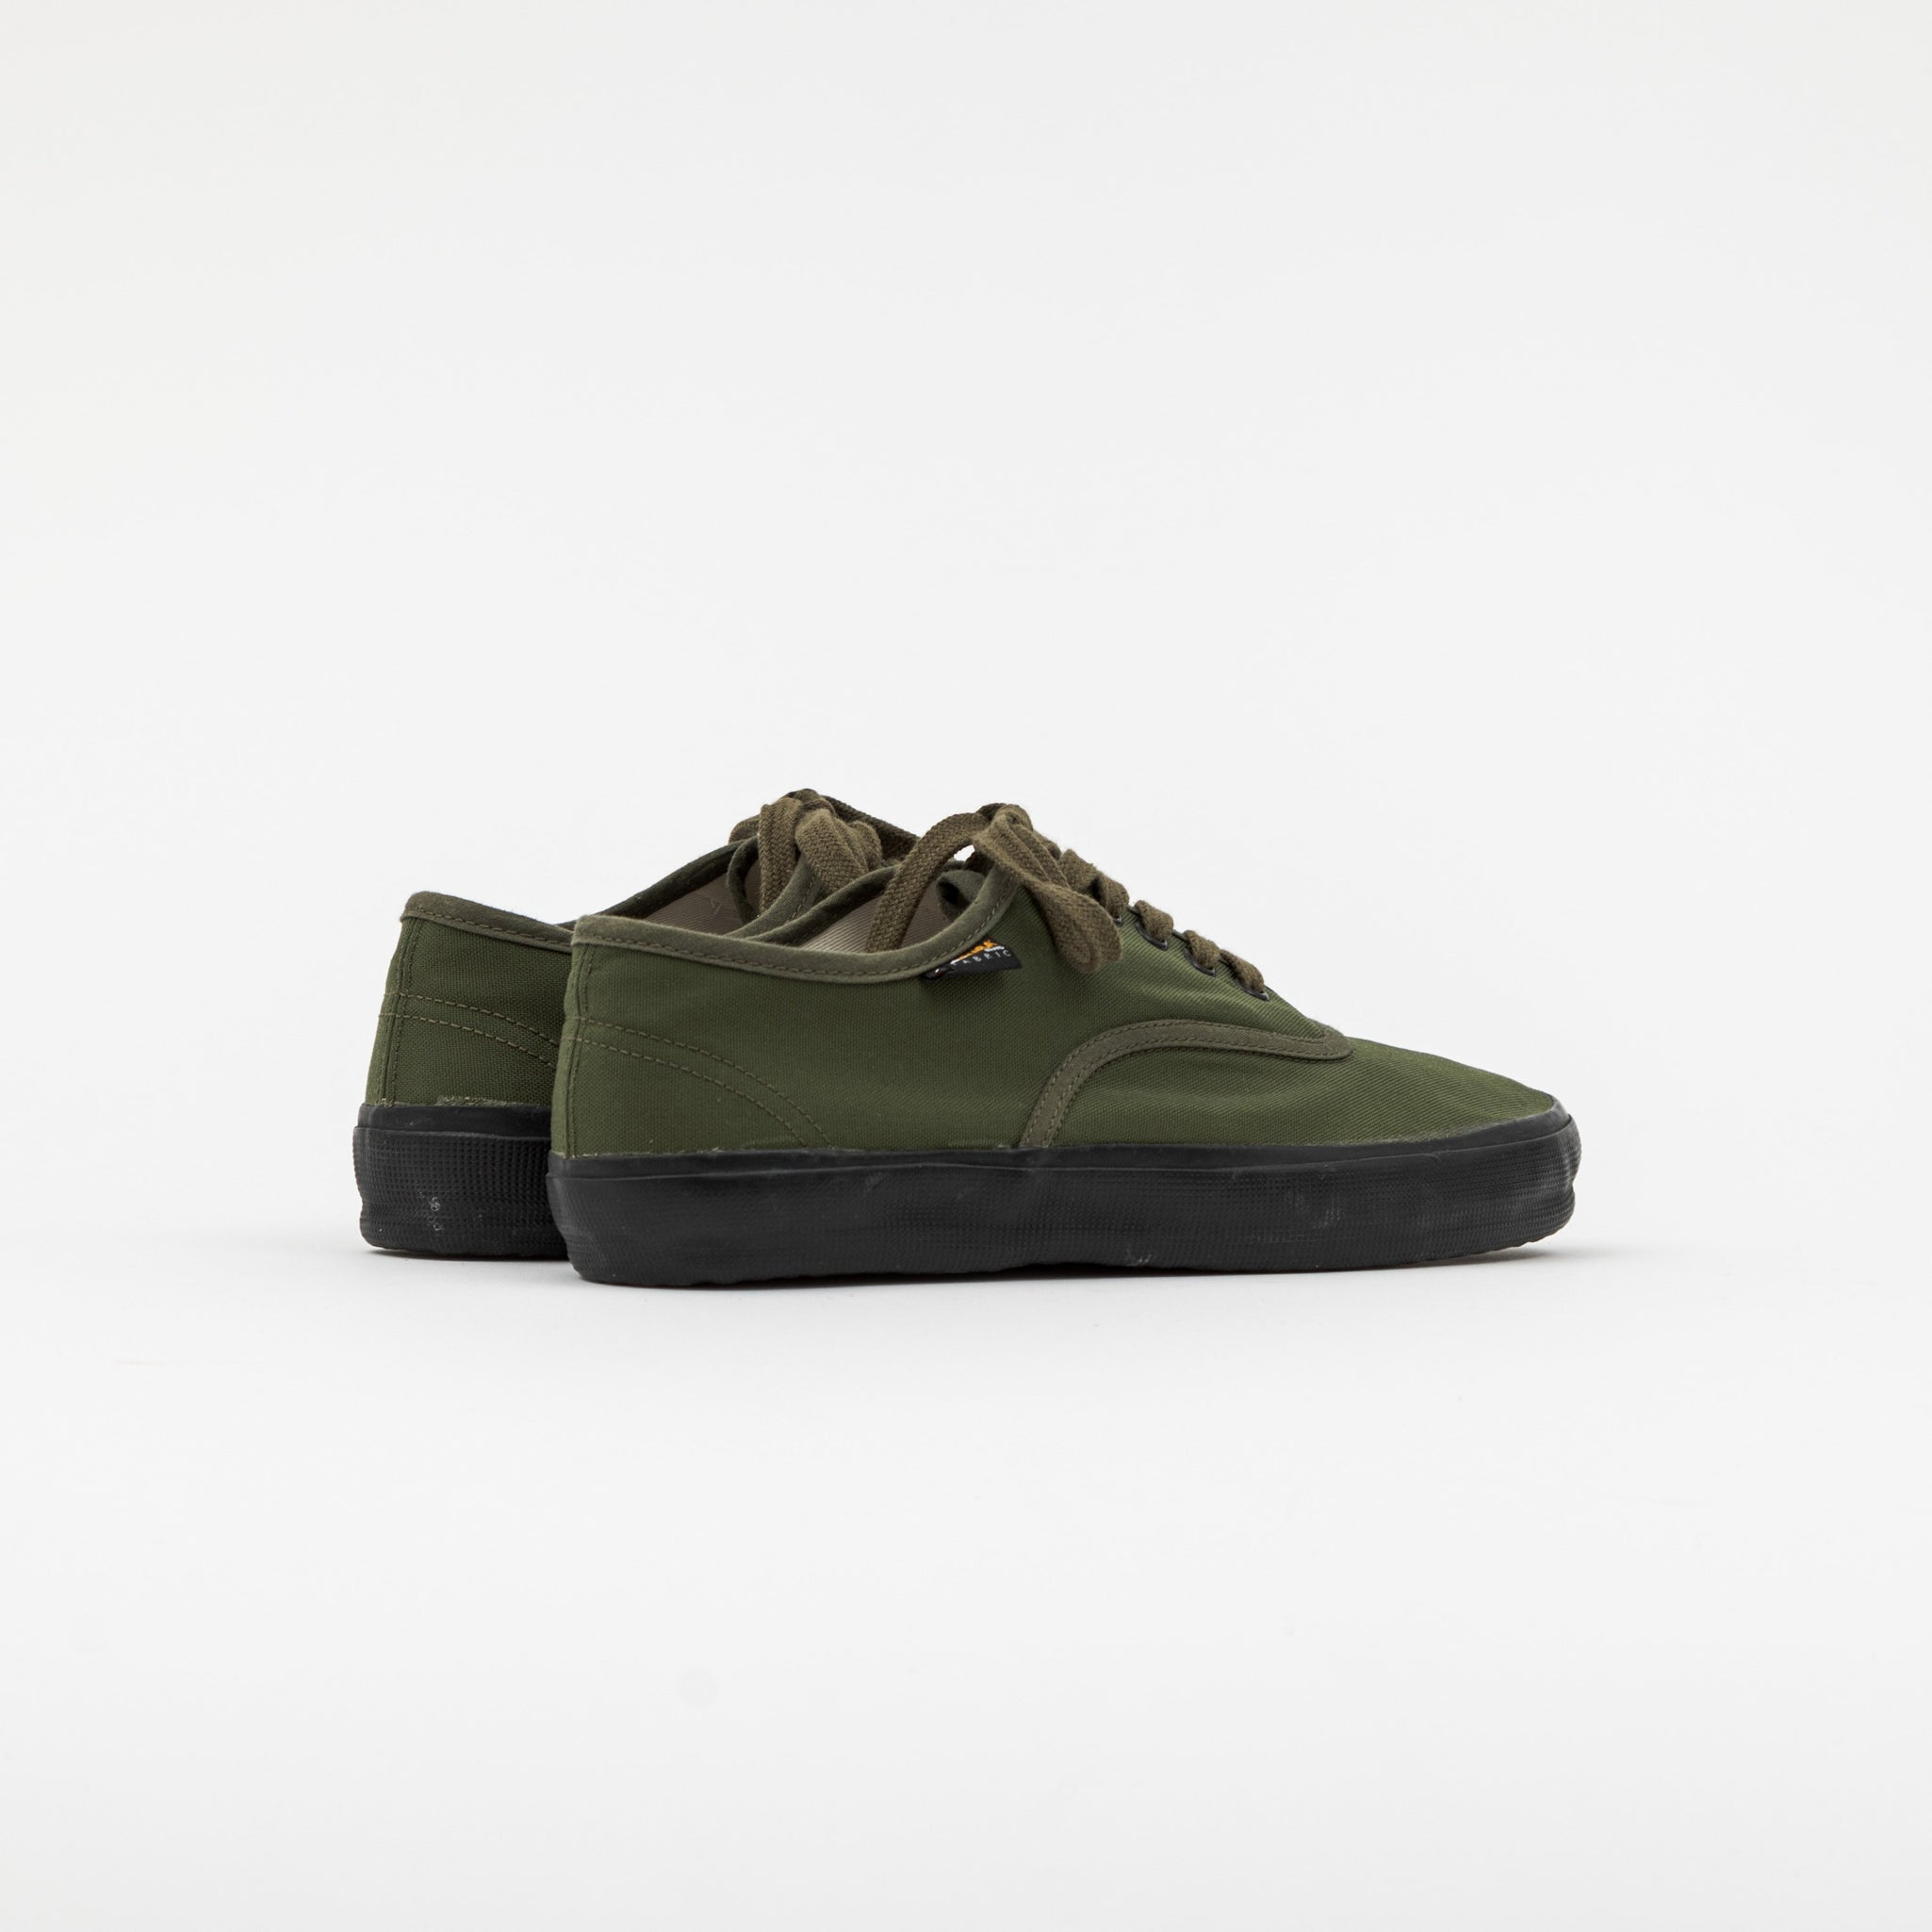 ROF-US-NAVY-MILITARY-TRAINER-OLIVE-SUNNYSIDERS-5.jpg